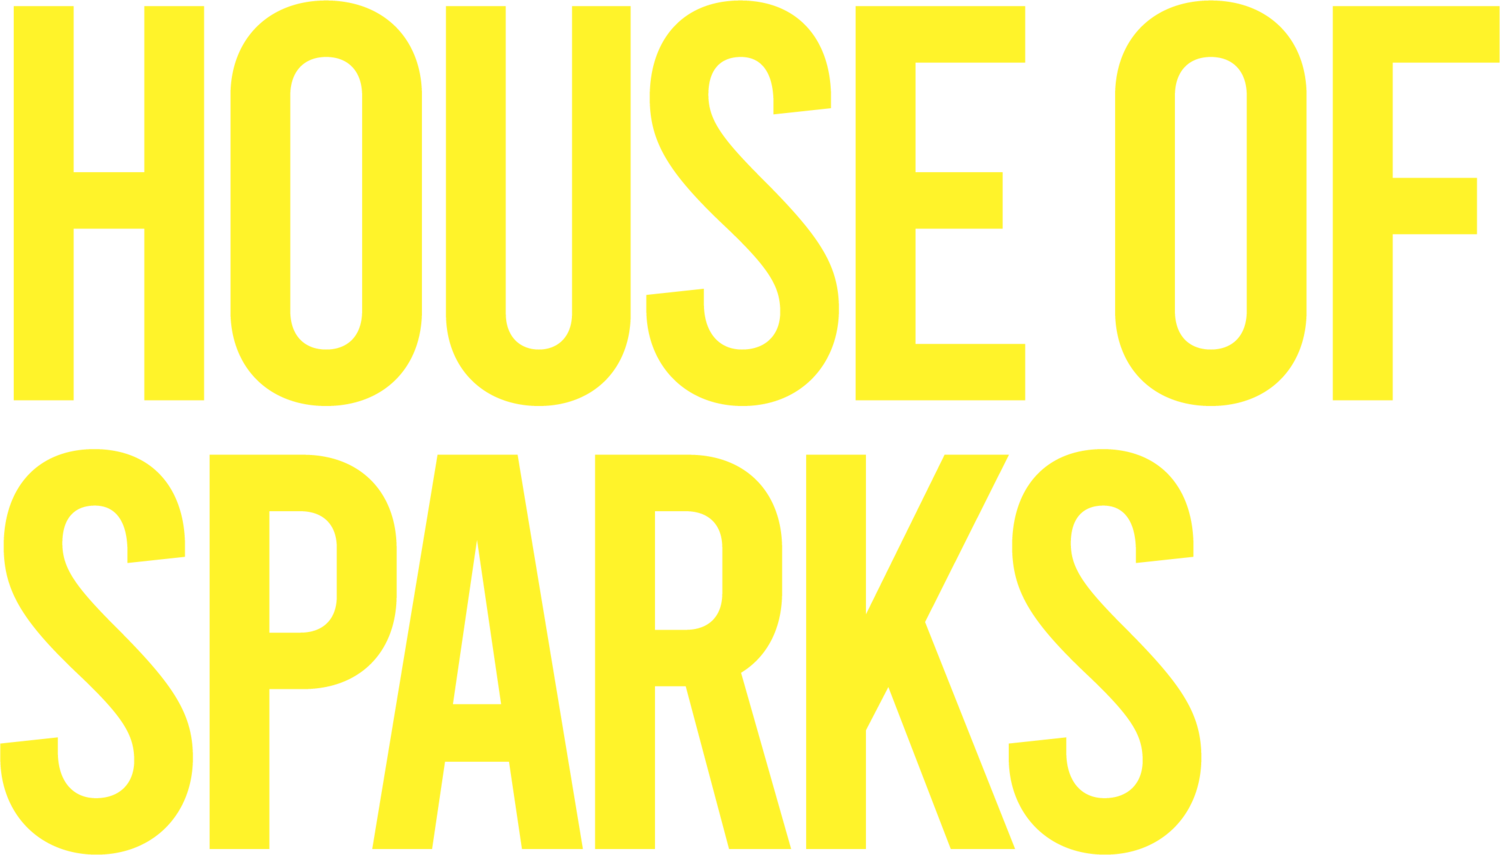 House of Sparks